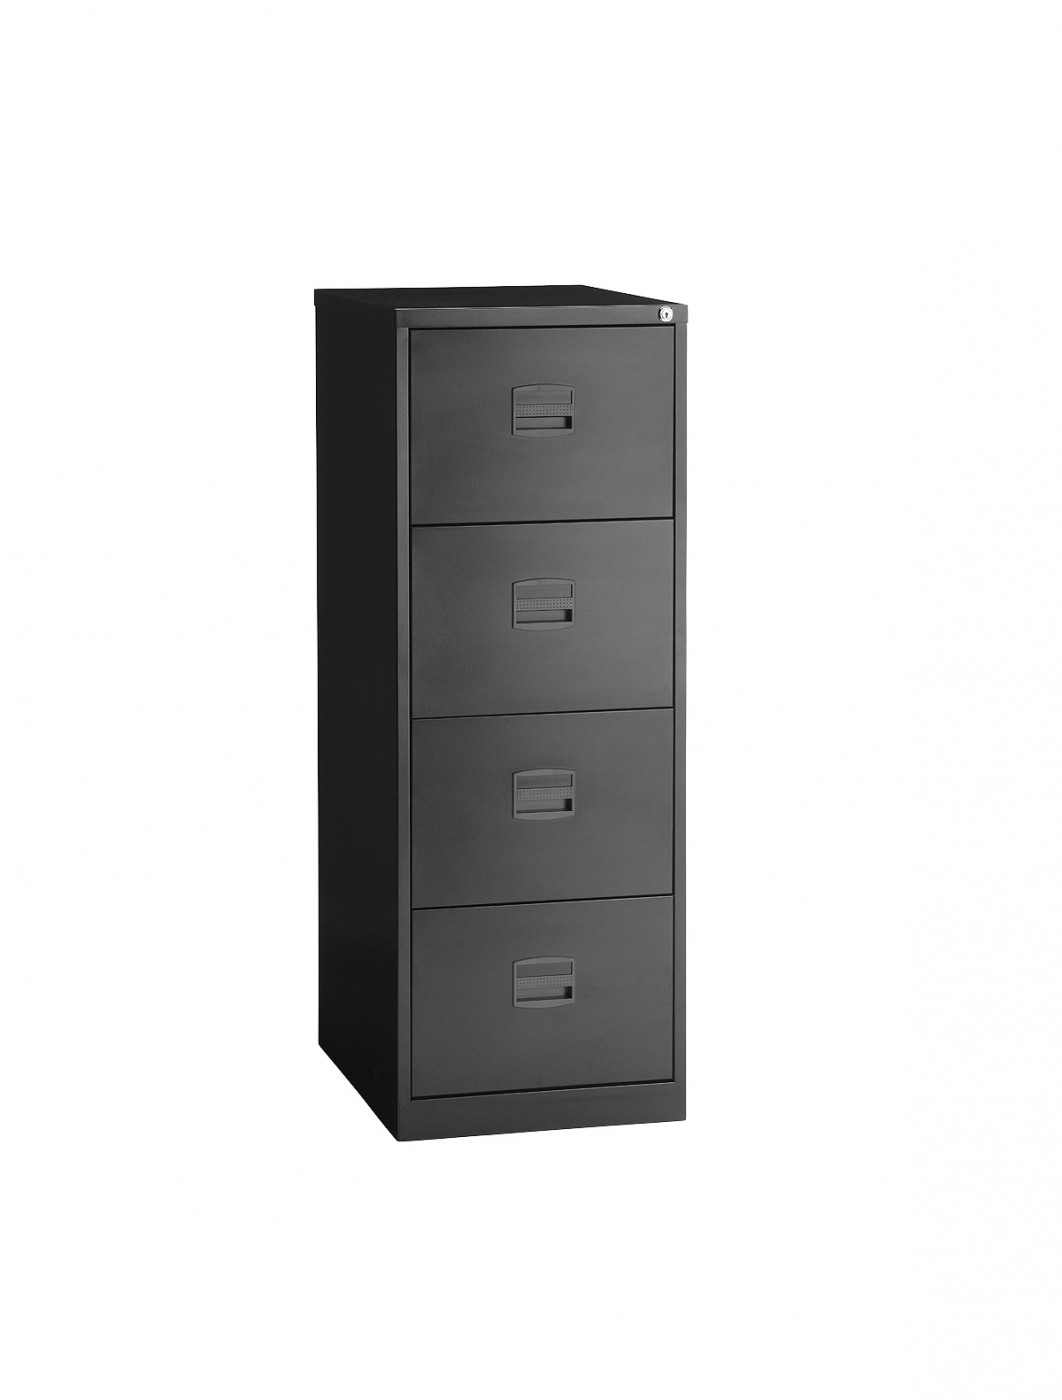 Innovative Office Furniture Cabinets Design And Types